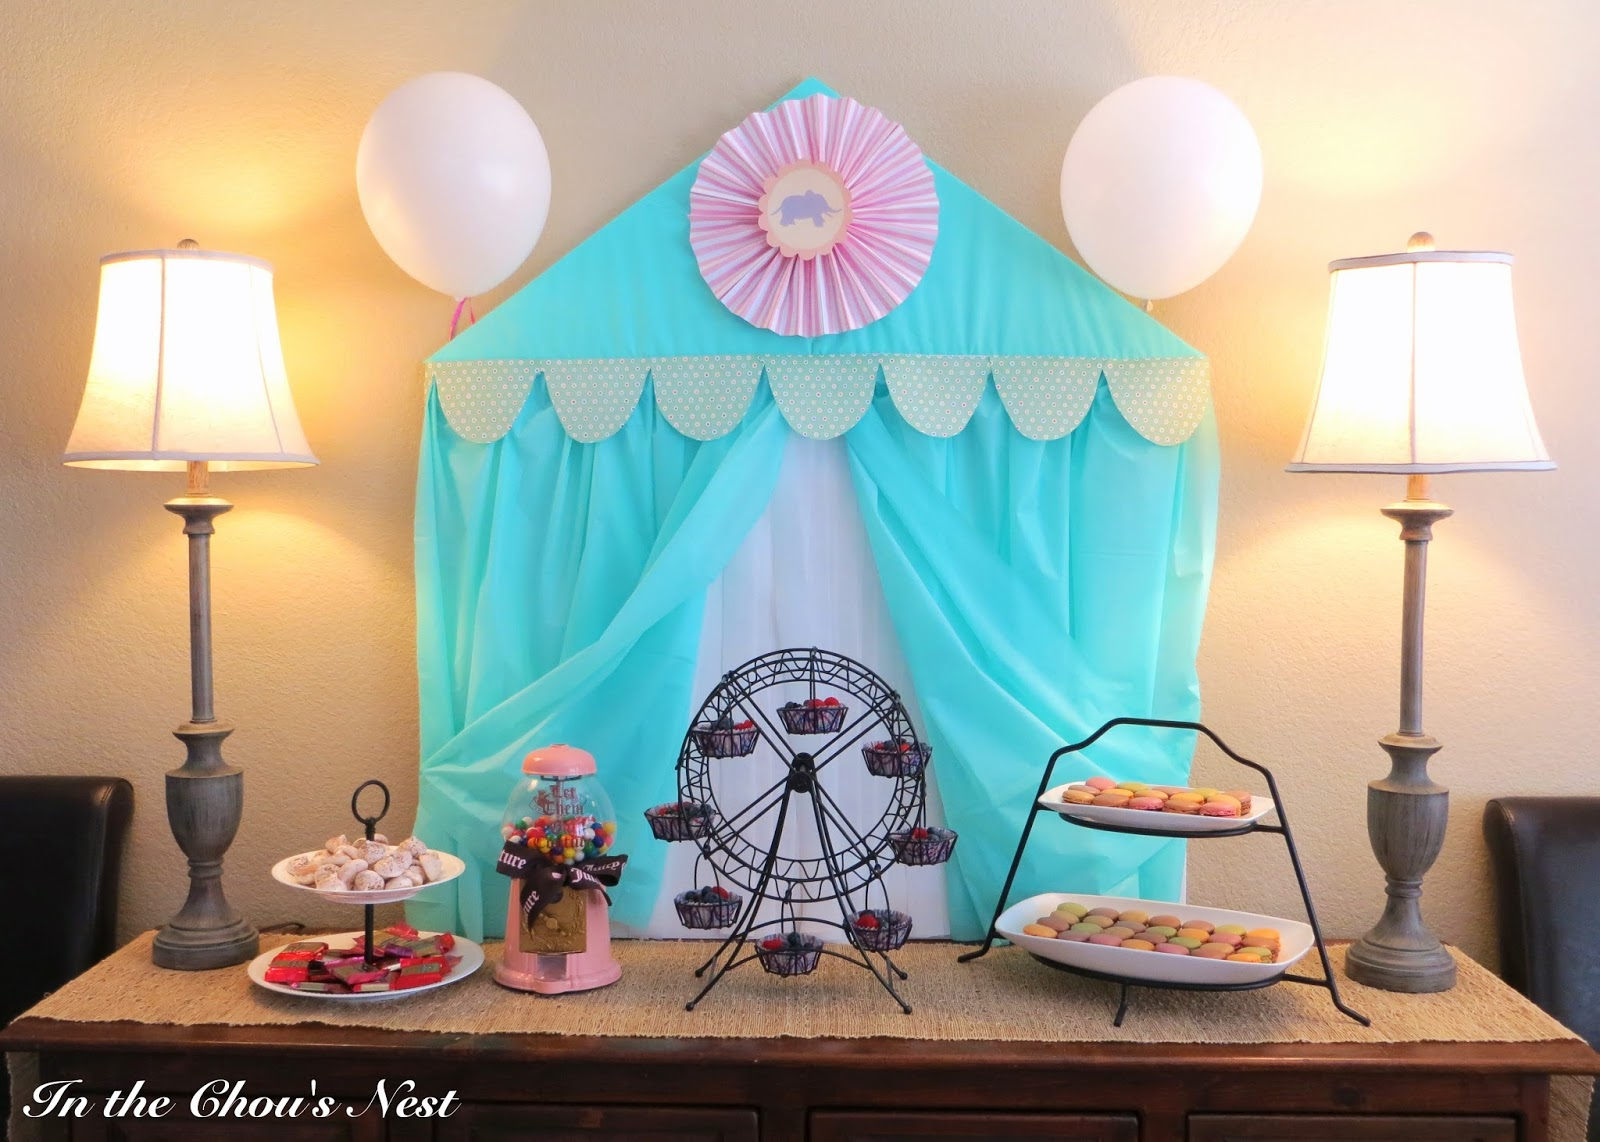 In The Chous Nest Circus Themed Ba Shower Details for size 1600 X 1142